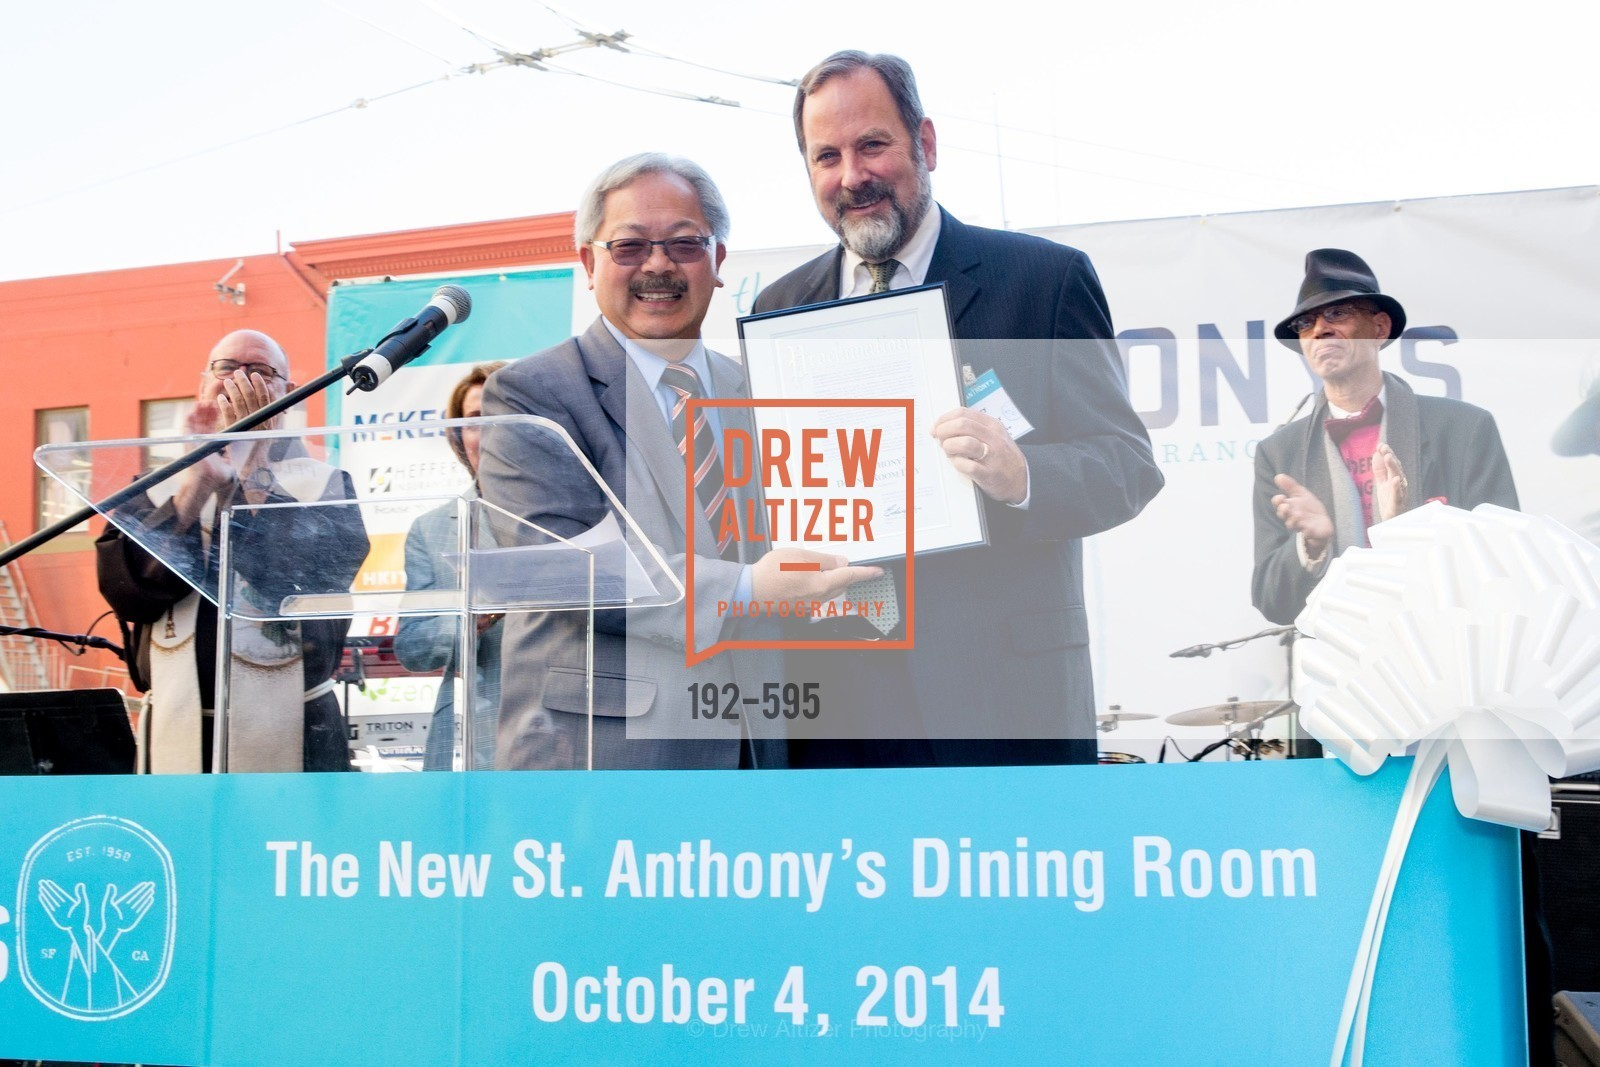 Ed Lee, Barry Stenger, ST. ANTHONY'S Dining Room Ribbon Cutting Ceremony, US, October 5th, 2014,Drew Altizer, Drew Altizer Photography, full-service event agency, private events, San Francisco photographer, photographer California